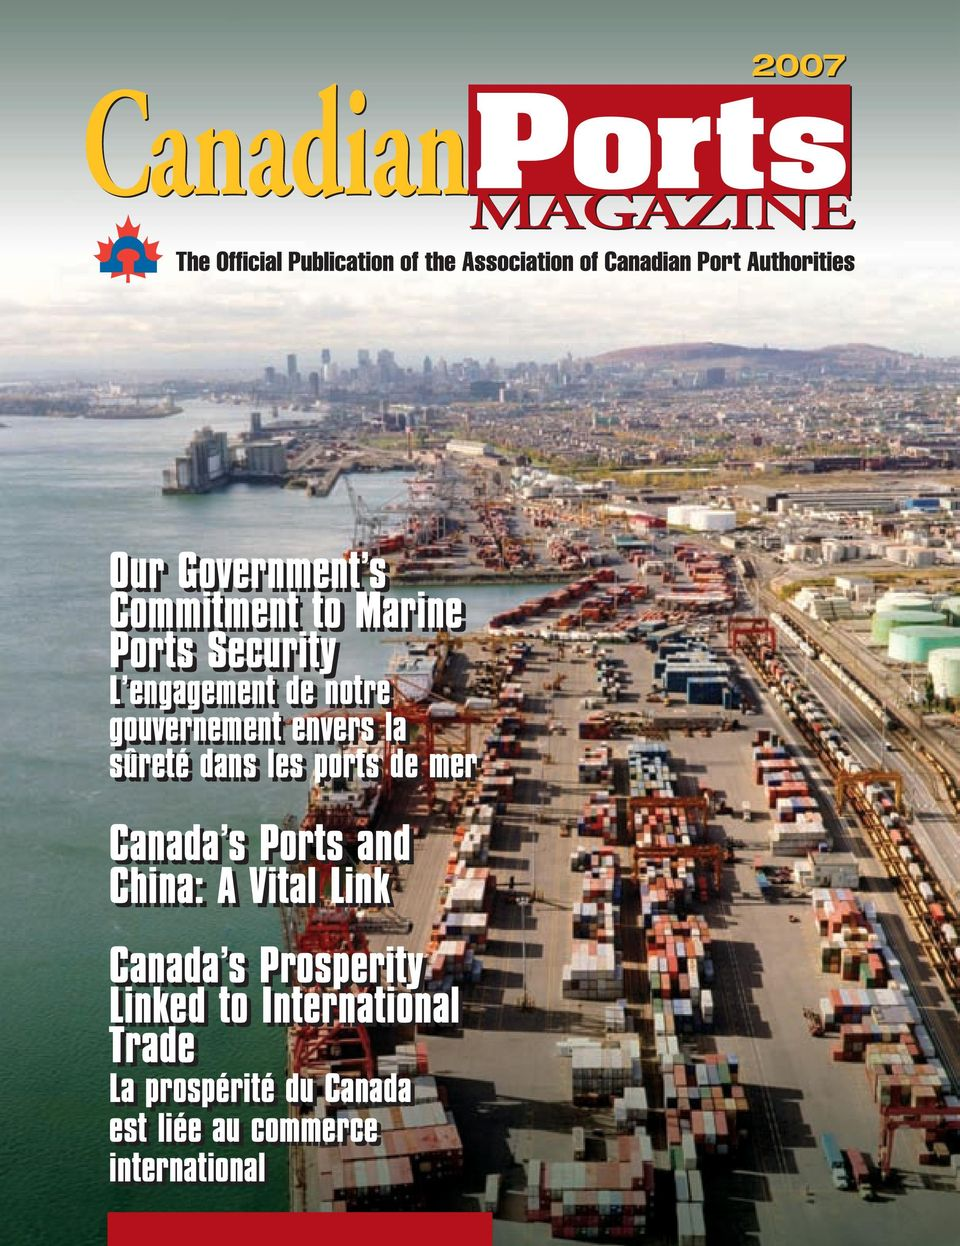 mer Canada s Ports and China: A Vital Link Canada s Prosperity Linked